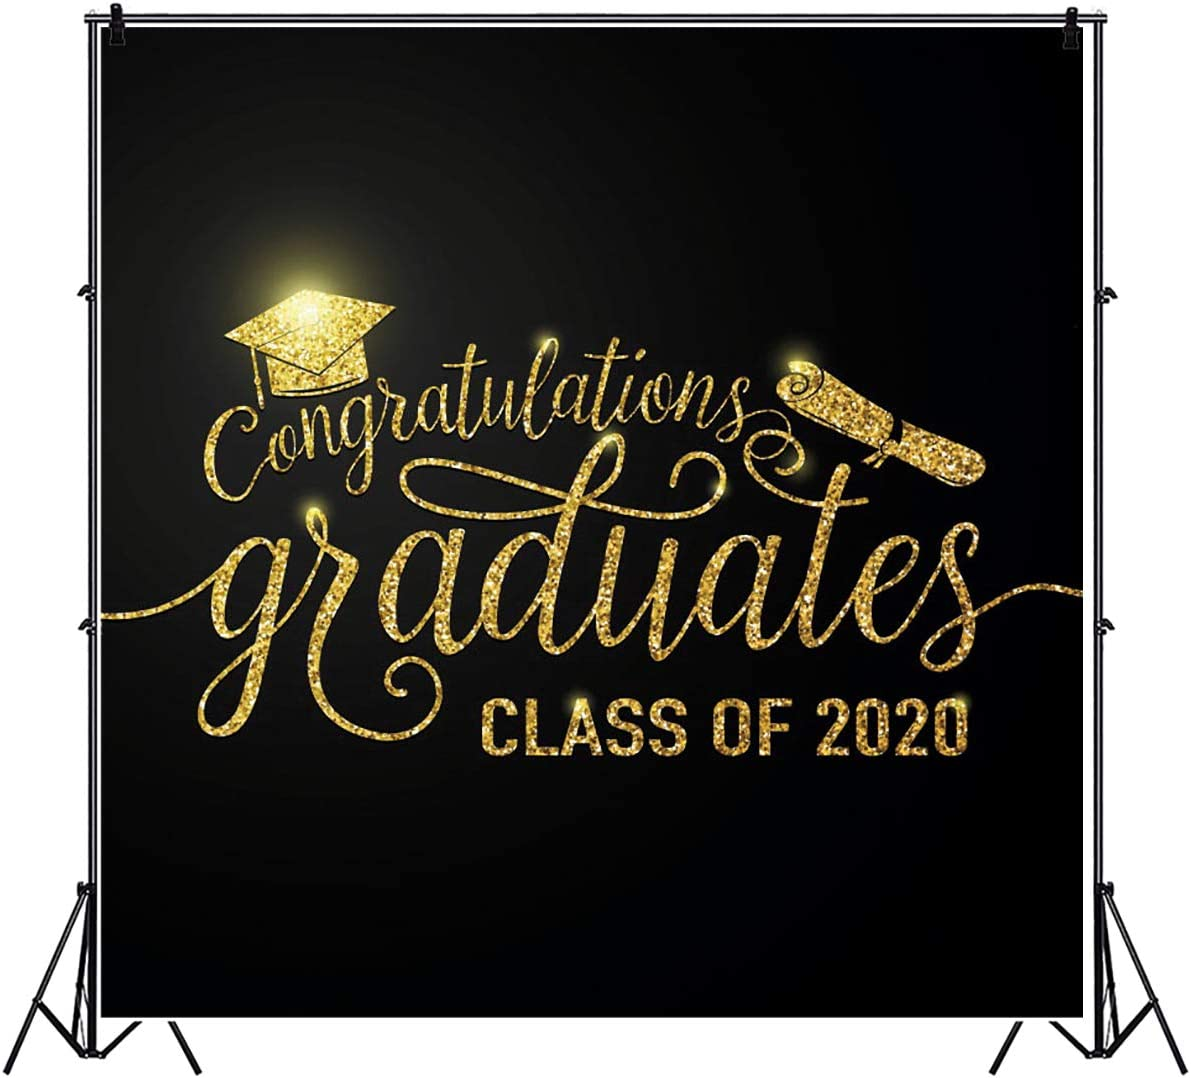 Leyiyi 8x8ft Class of 2020 Backdrop Gold Bachelor Cap Golden Champagne Glass Fireworks Photography Background Class Graduation Prom Party Banner Vinyl Photo Studio Props